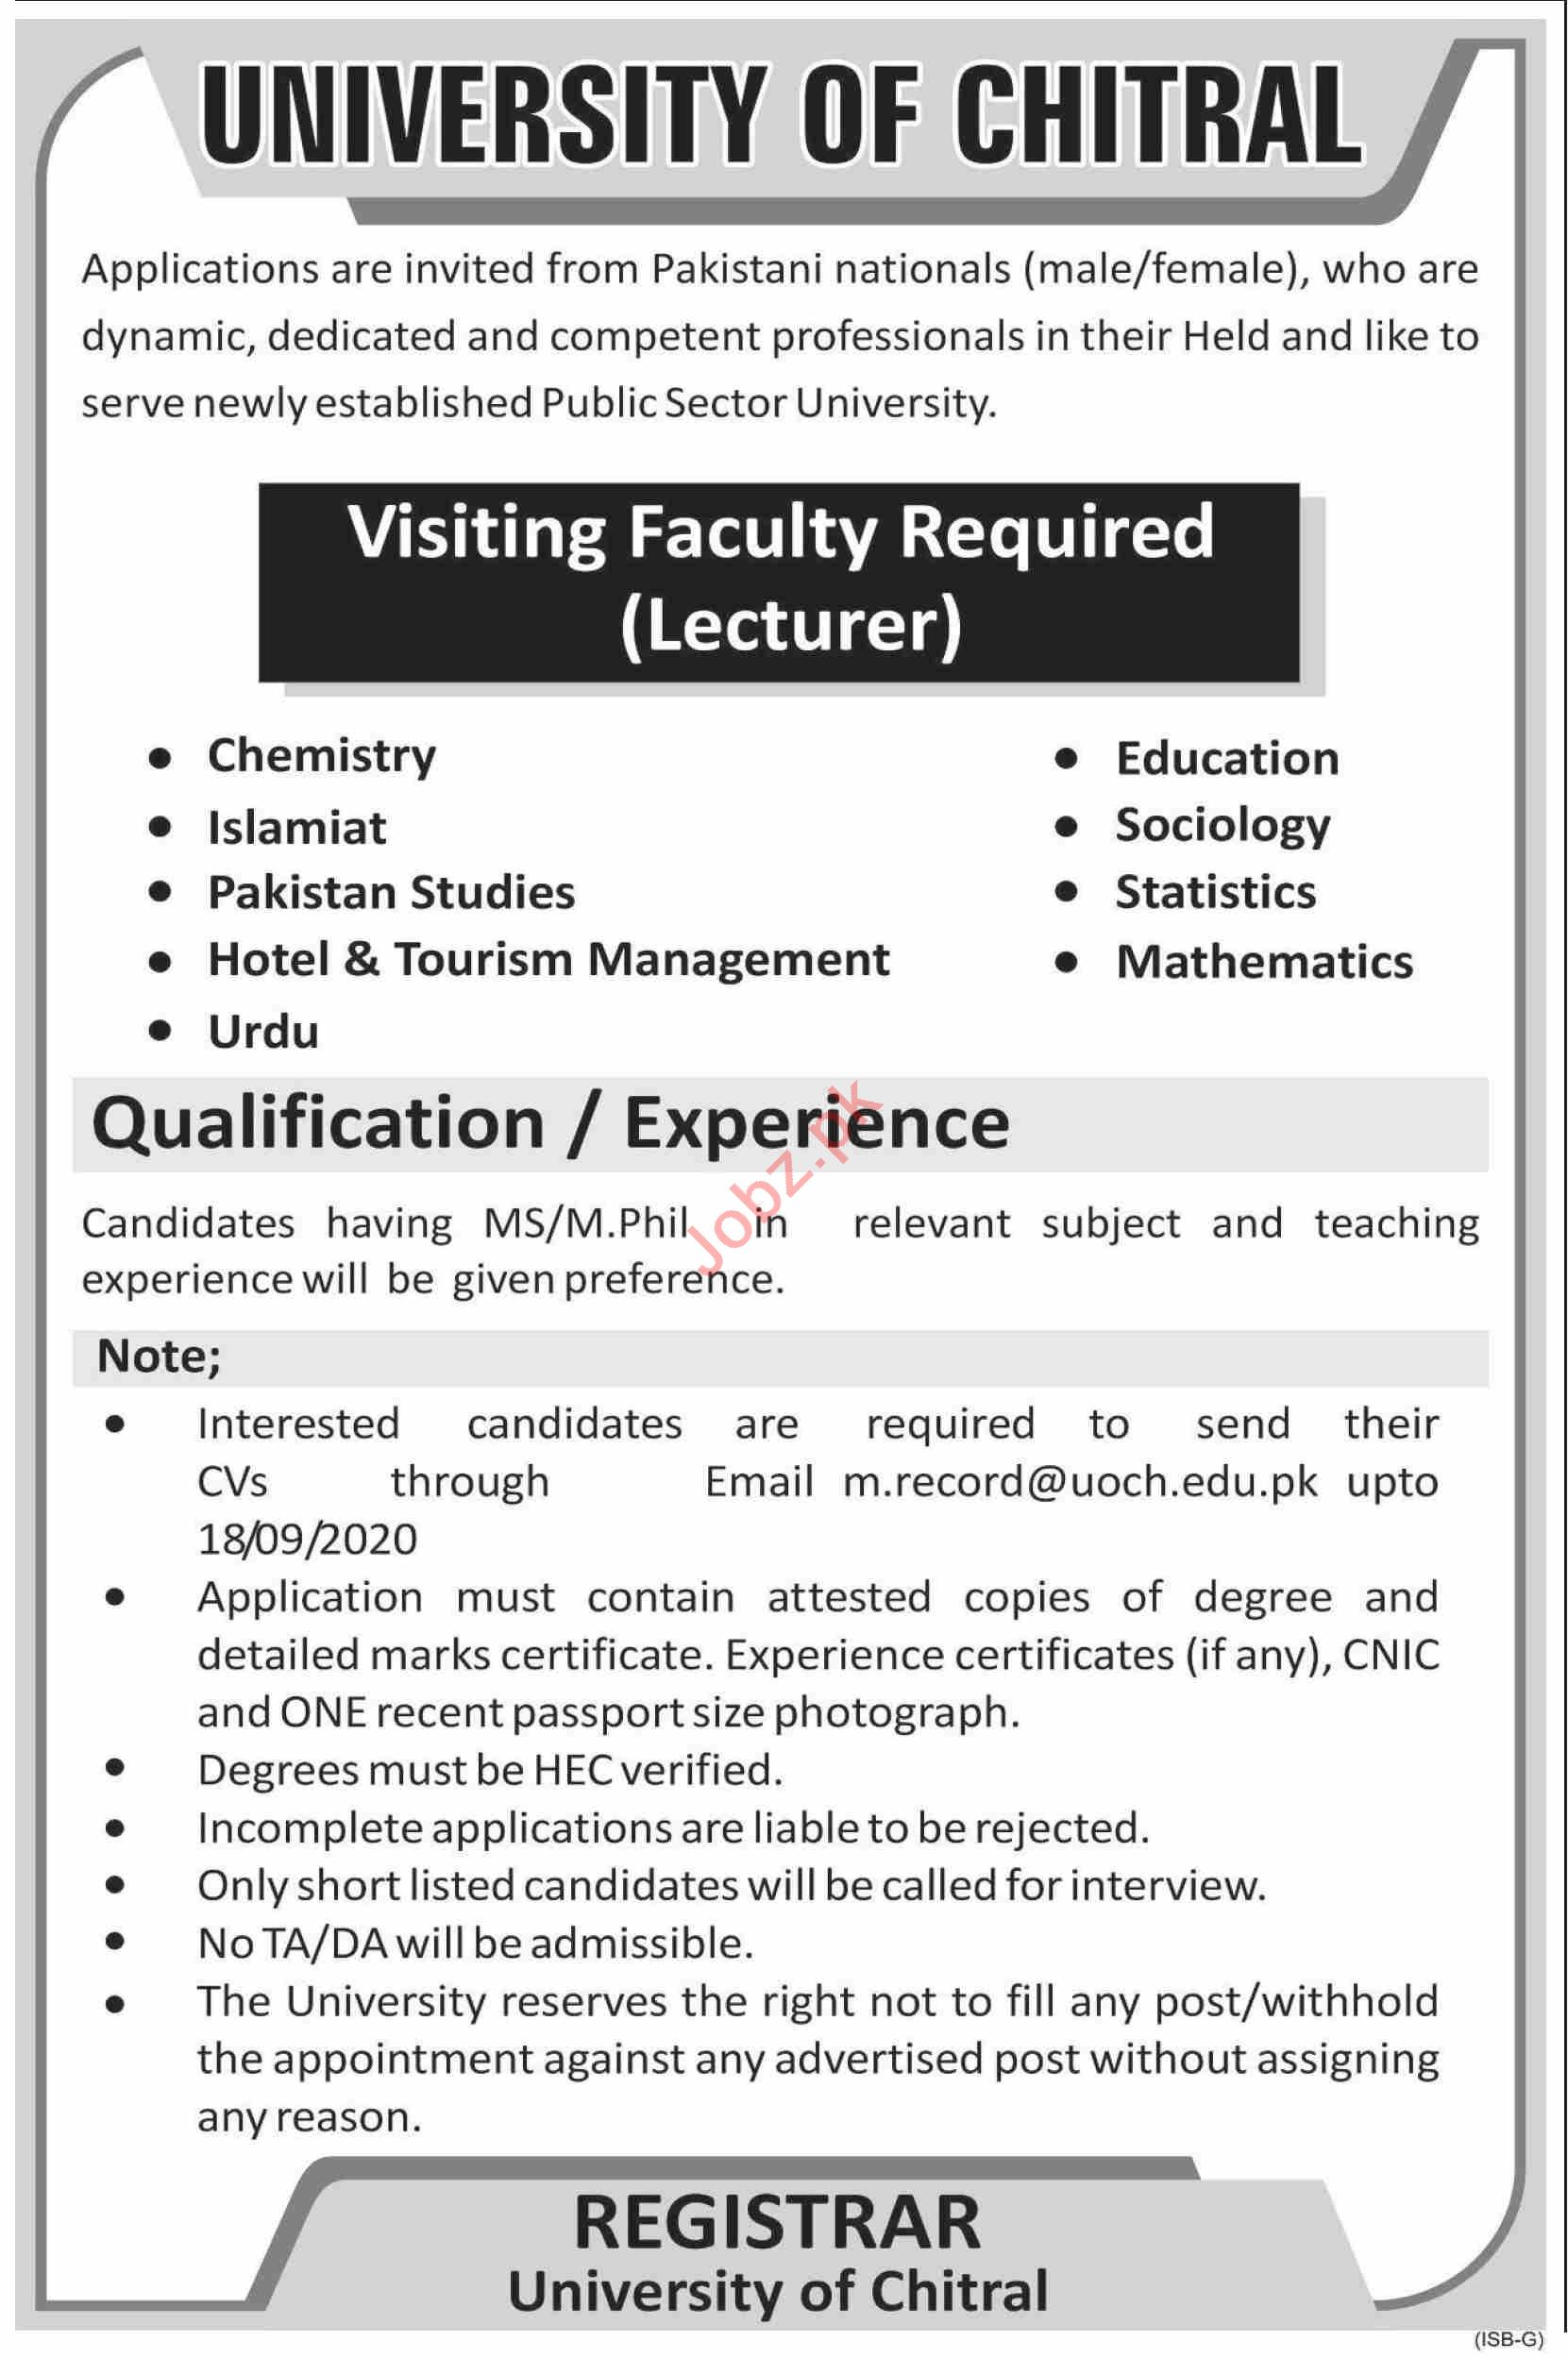 University of Chitral Jobs 2020 for Visiting Lecturers